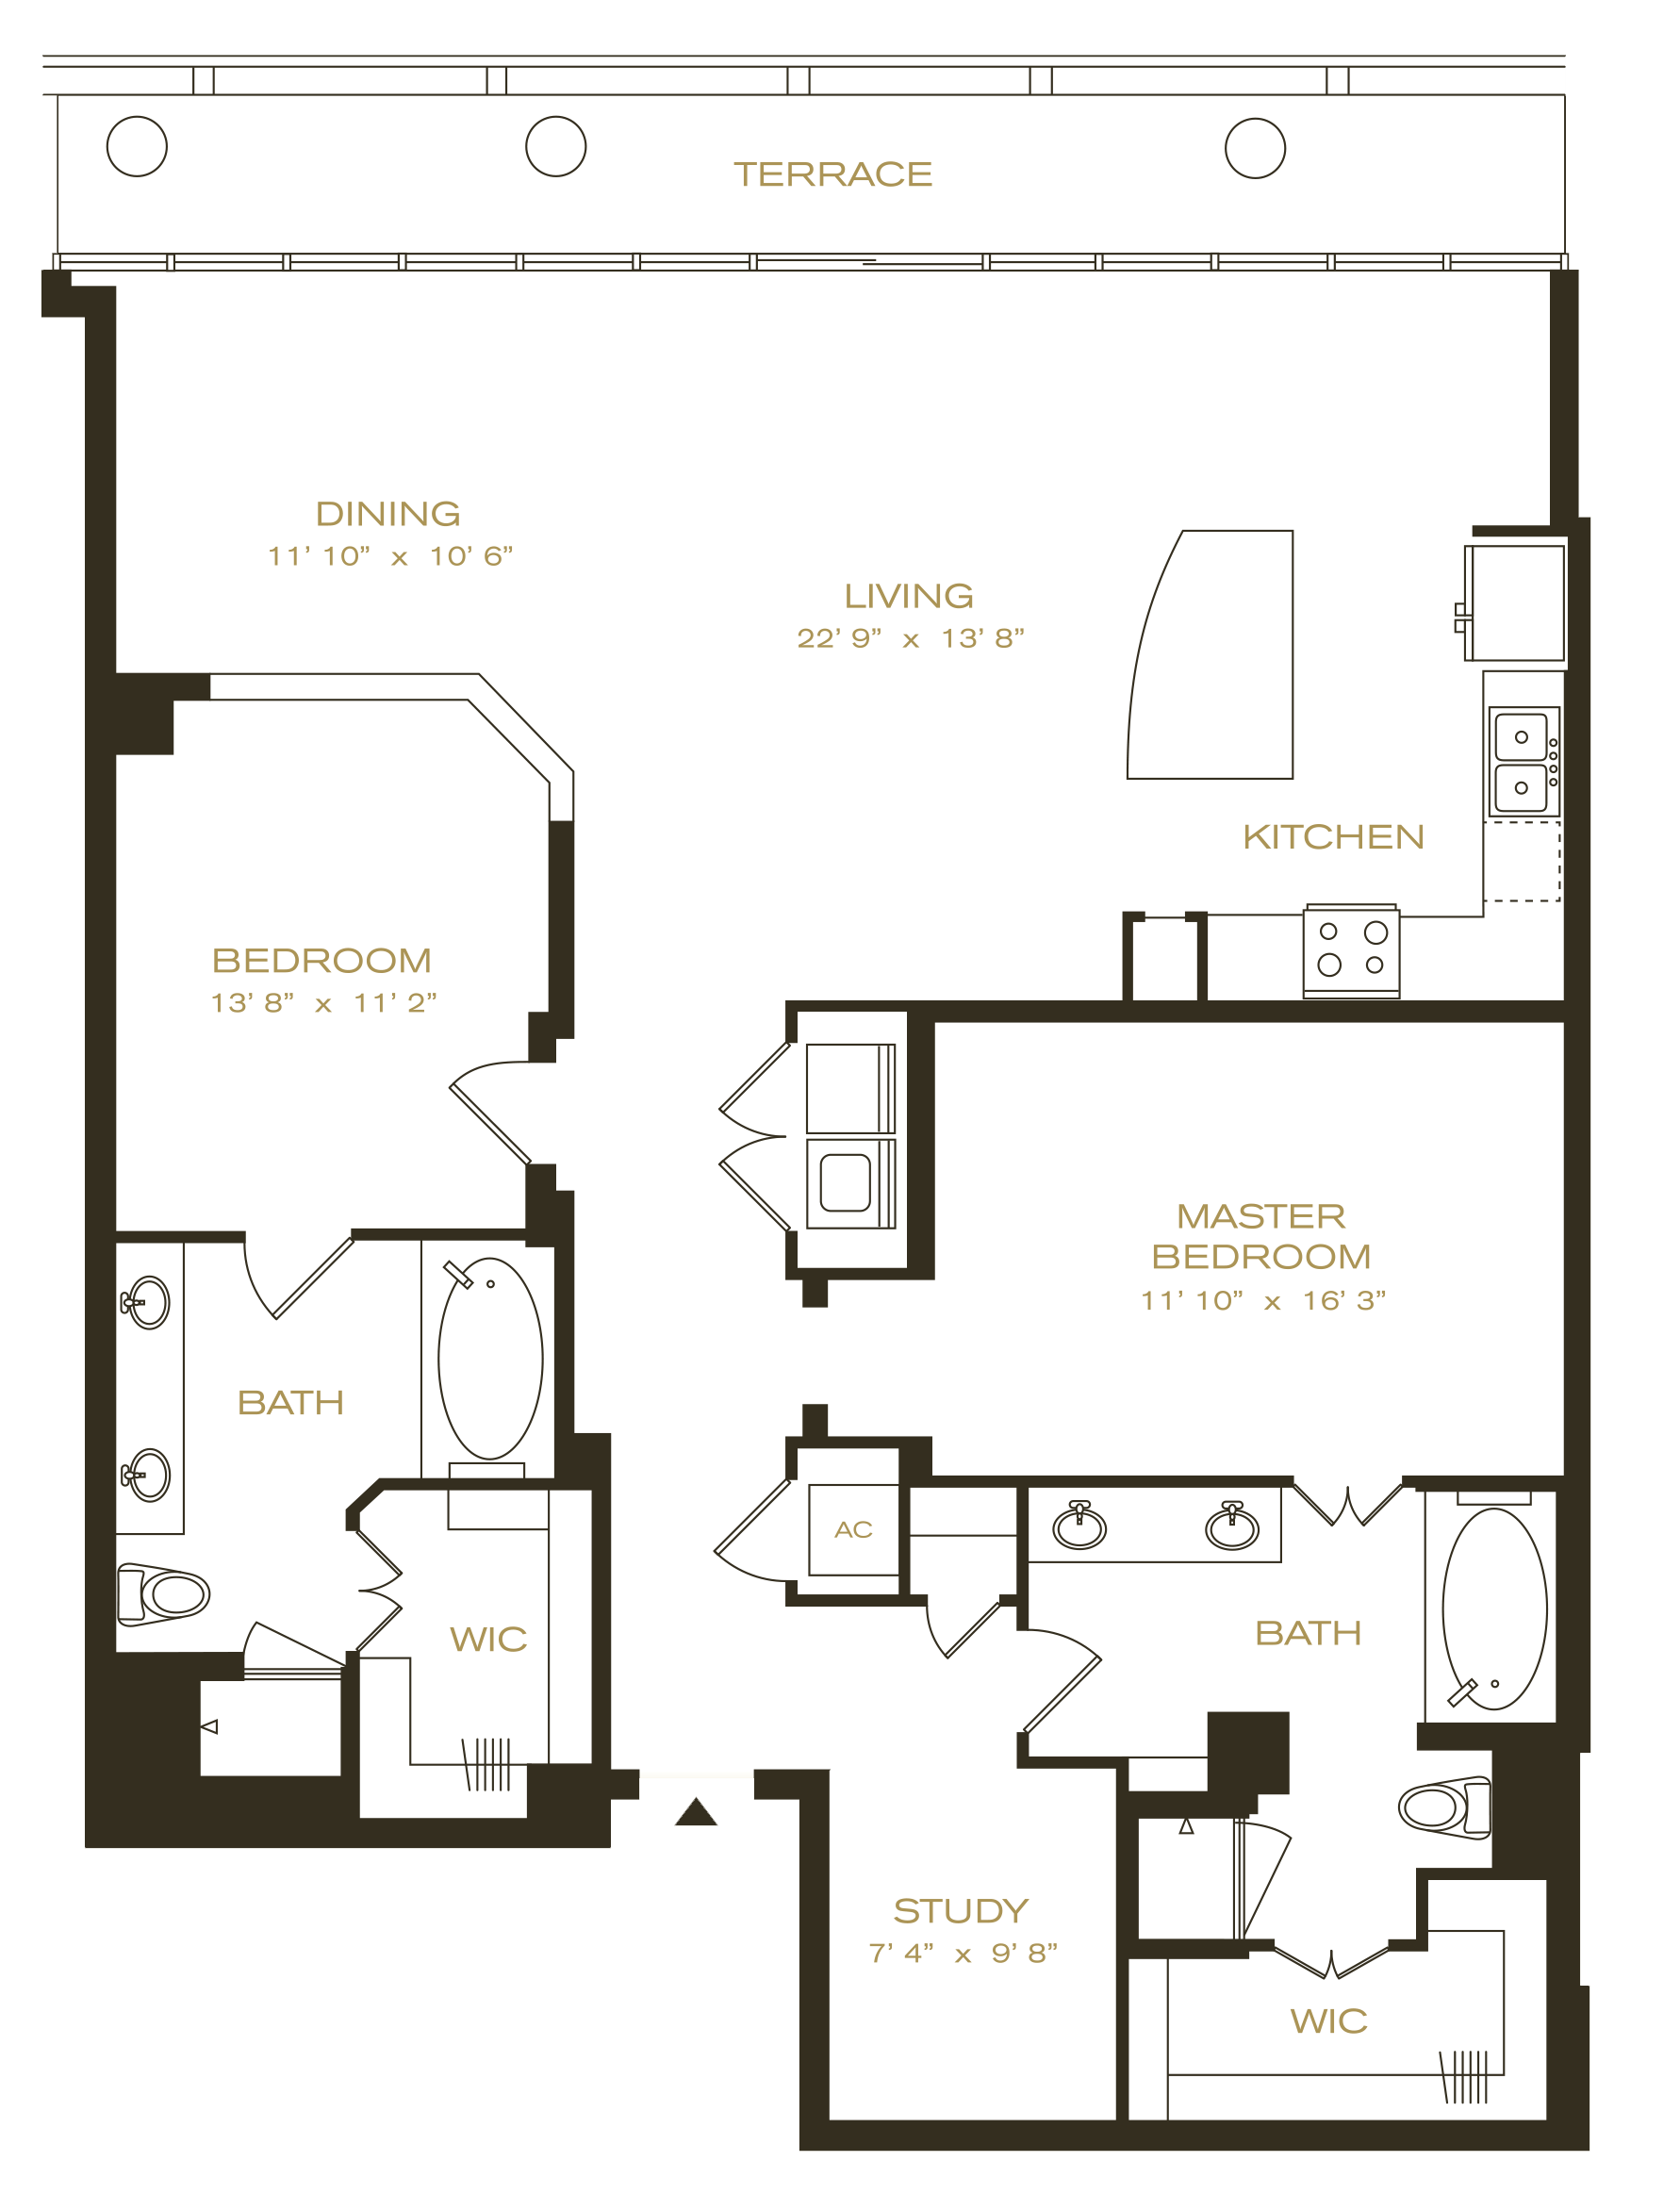 Uptown Dallas Apartments The Ashton Home 2010 Town And Country 3 8 Engine Diagram Penthouse 7